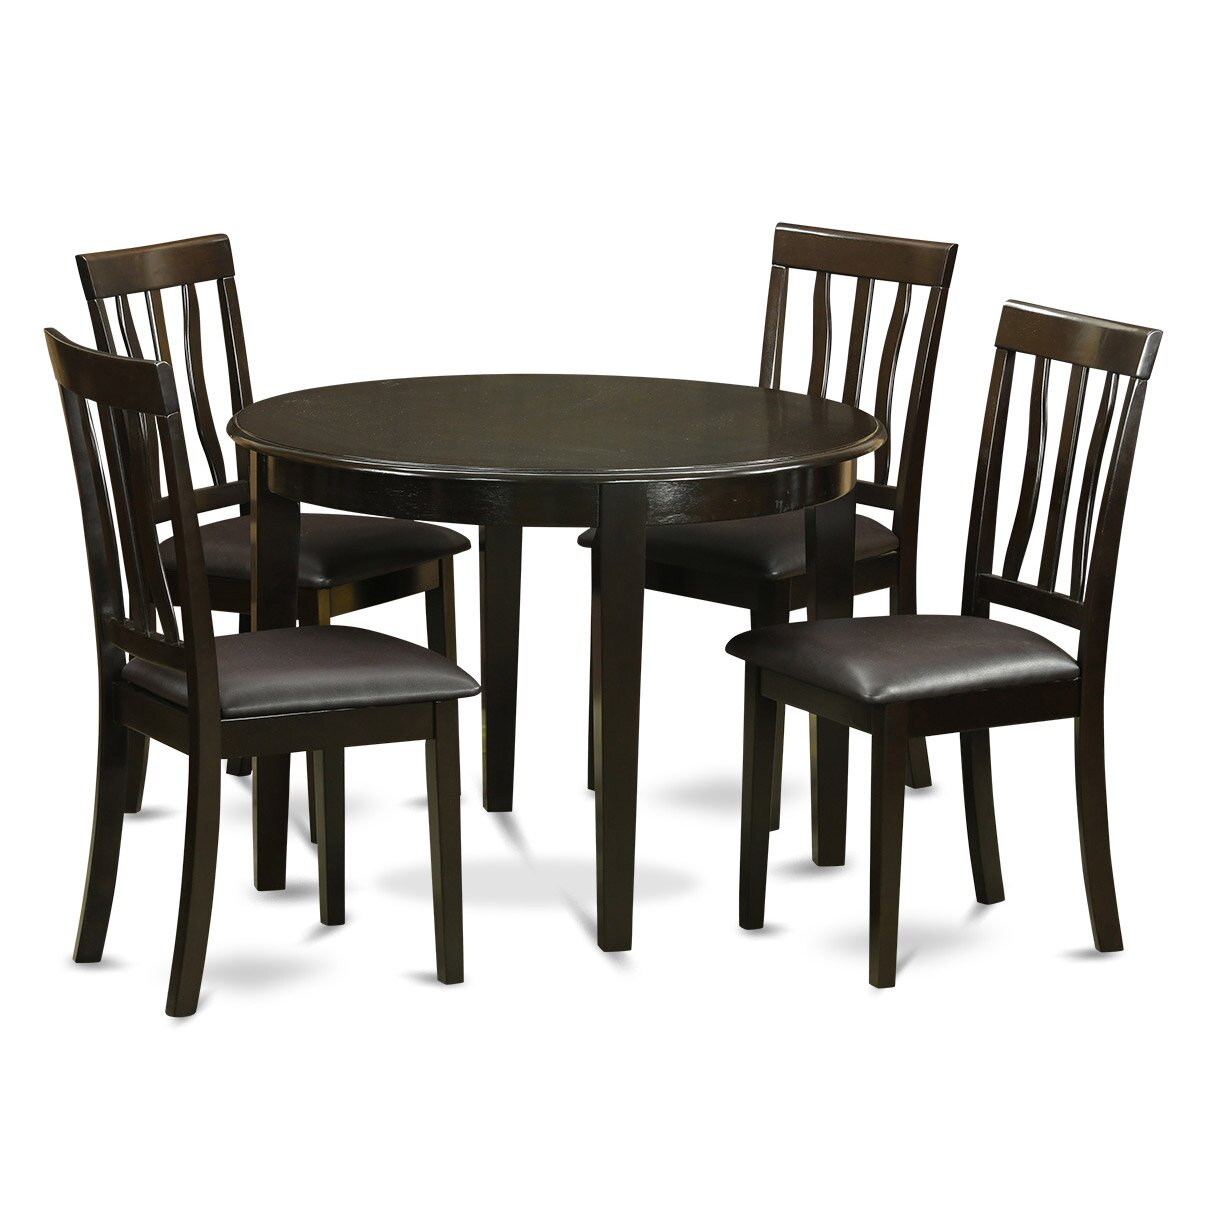 Round Kitchen Table And Chairs: Wooden Importers Boston 5 Piece Dining Set